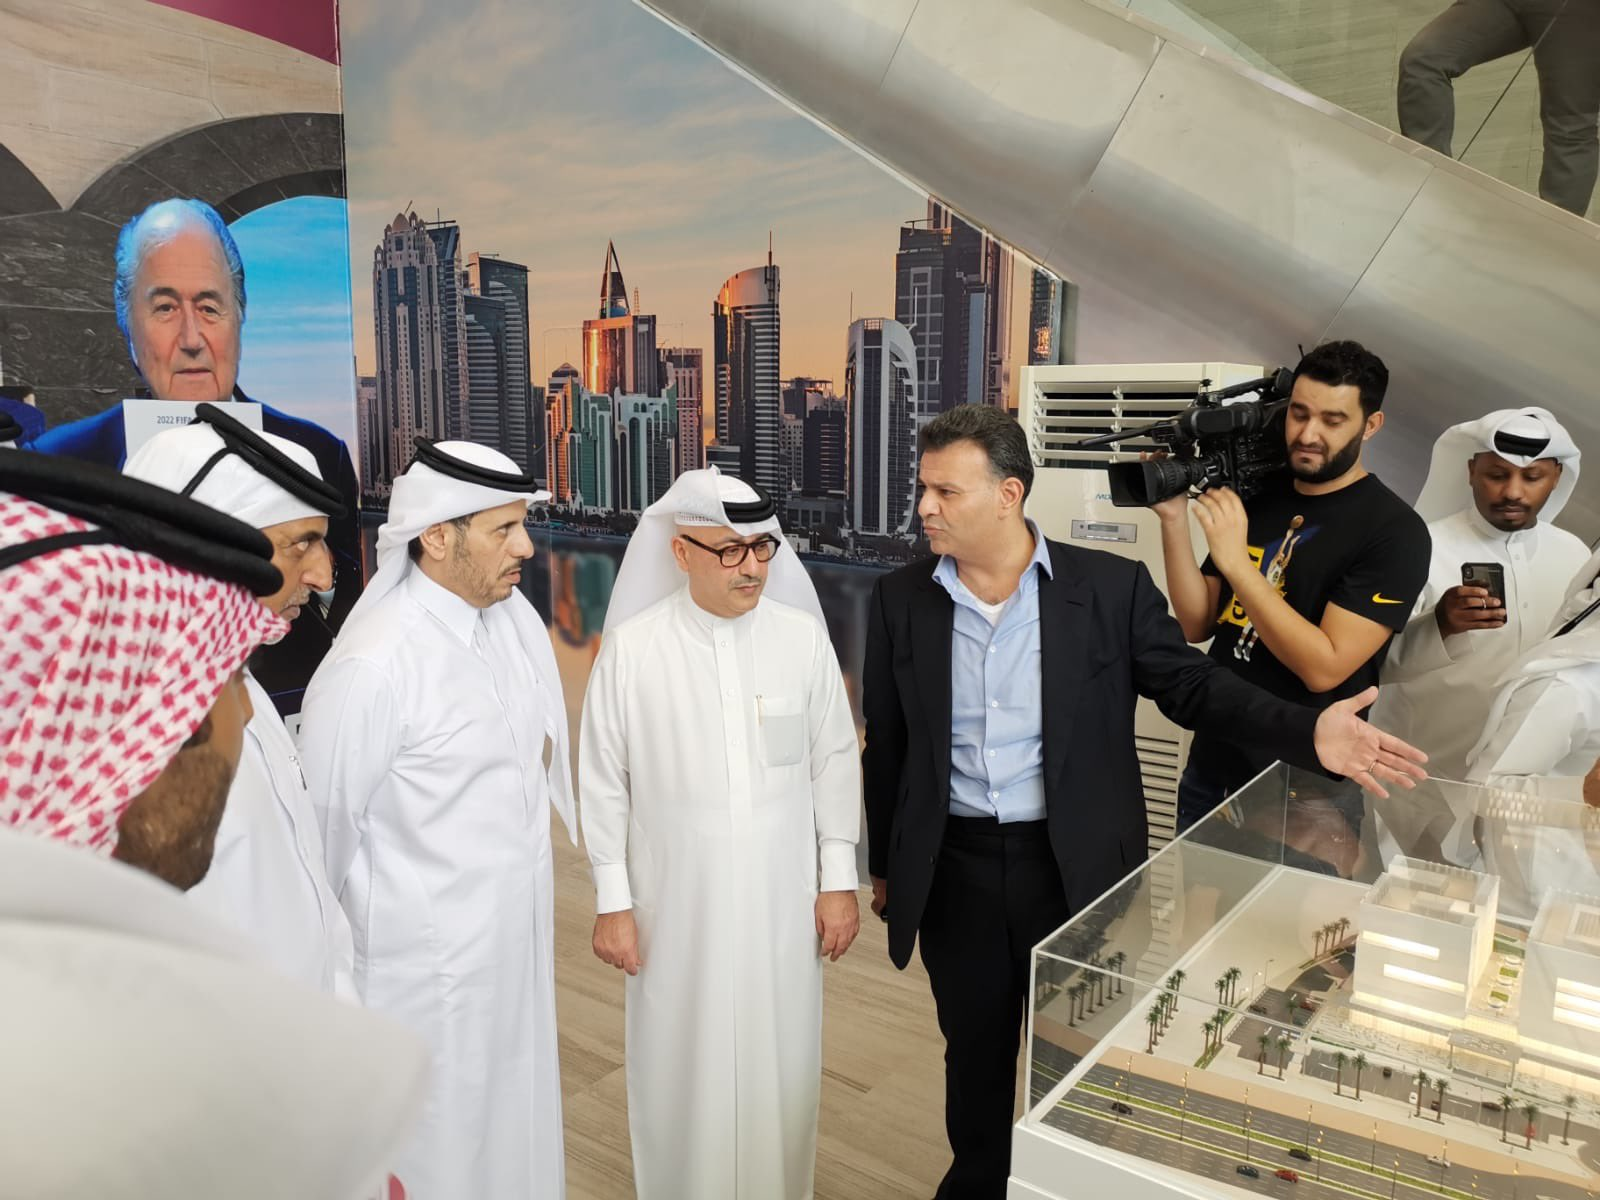 Iconic 2022 Building opens in Aspire Zone